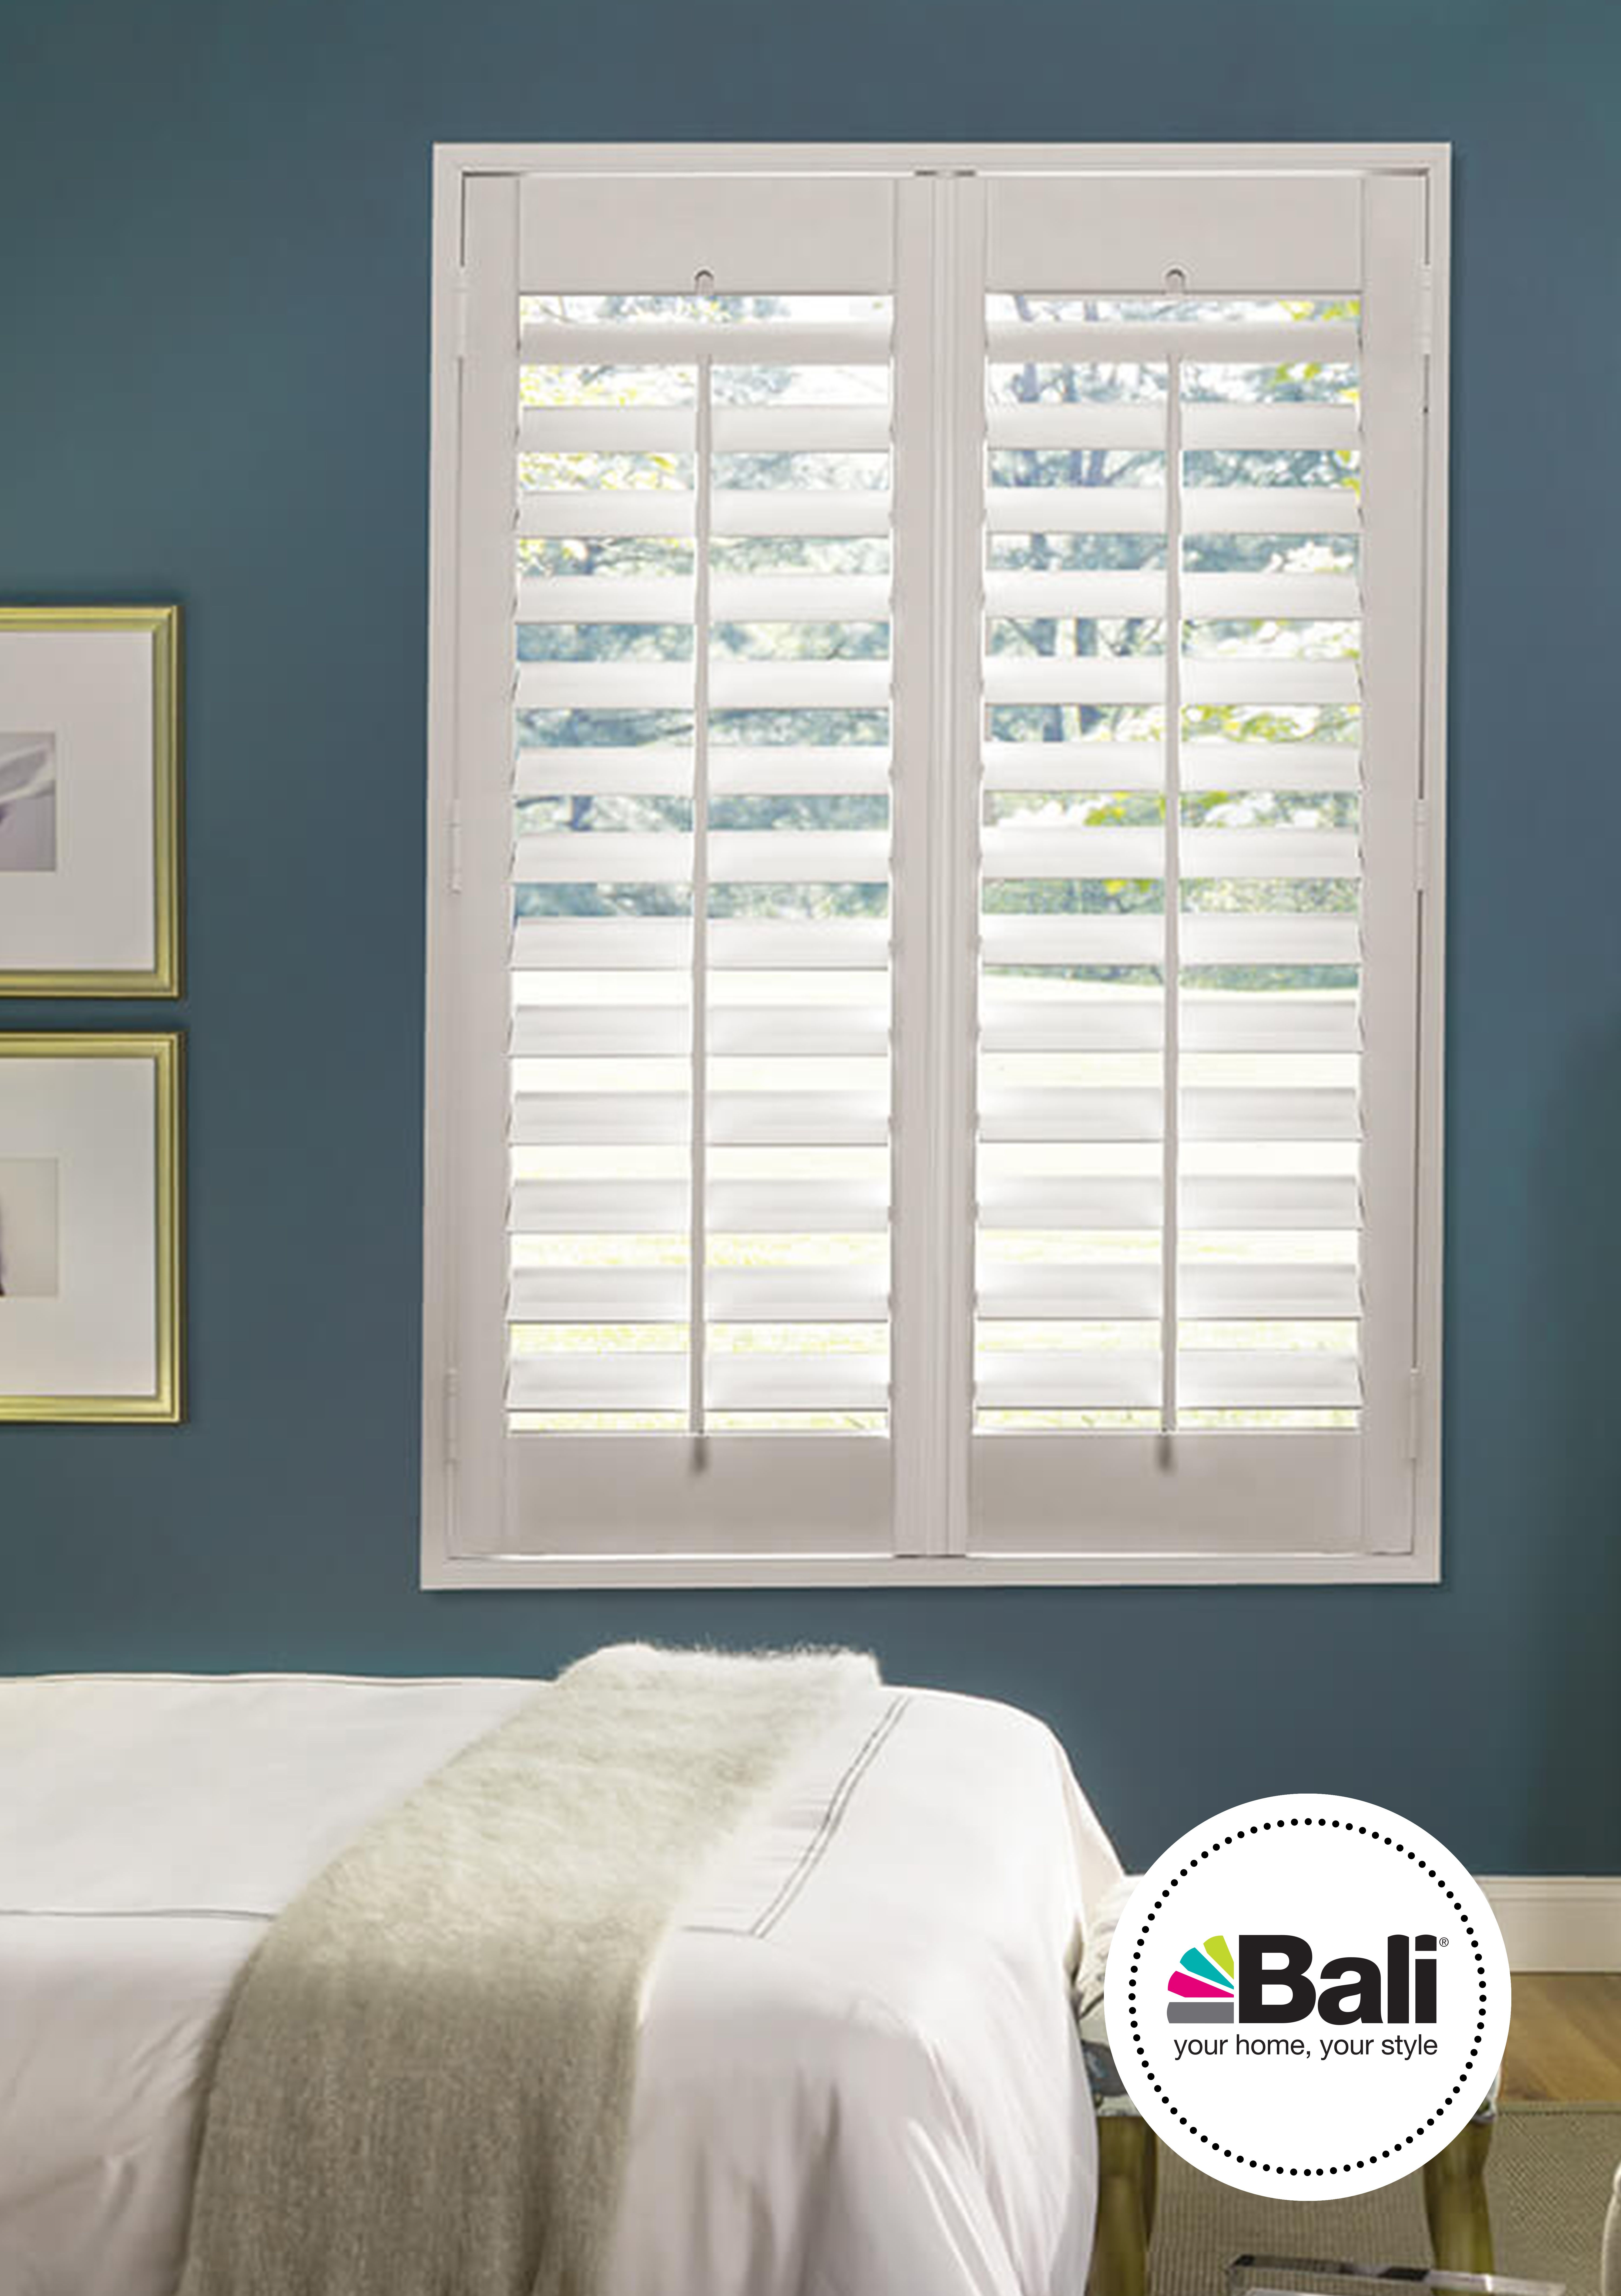 douglas graber bali at blinds depot curtains levelor tips home the parts shades com lake hunter lowes best review wood decorating crystal decor